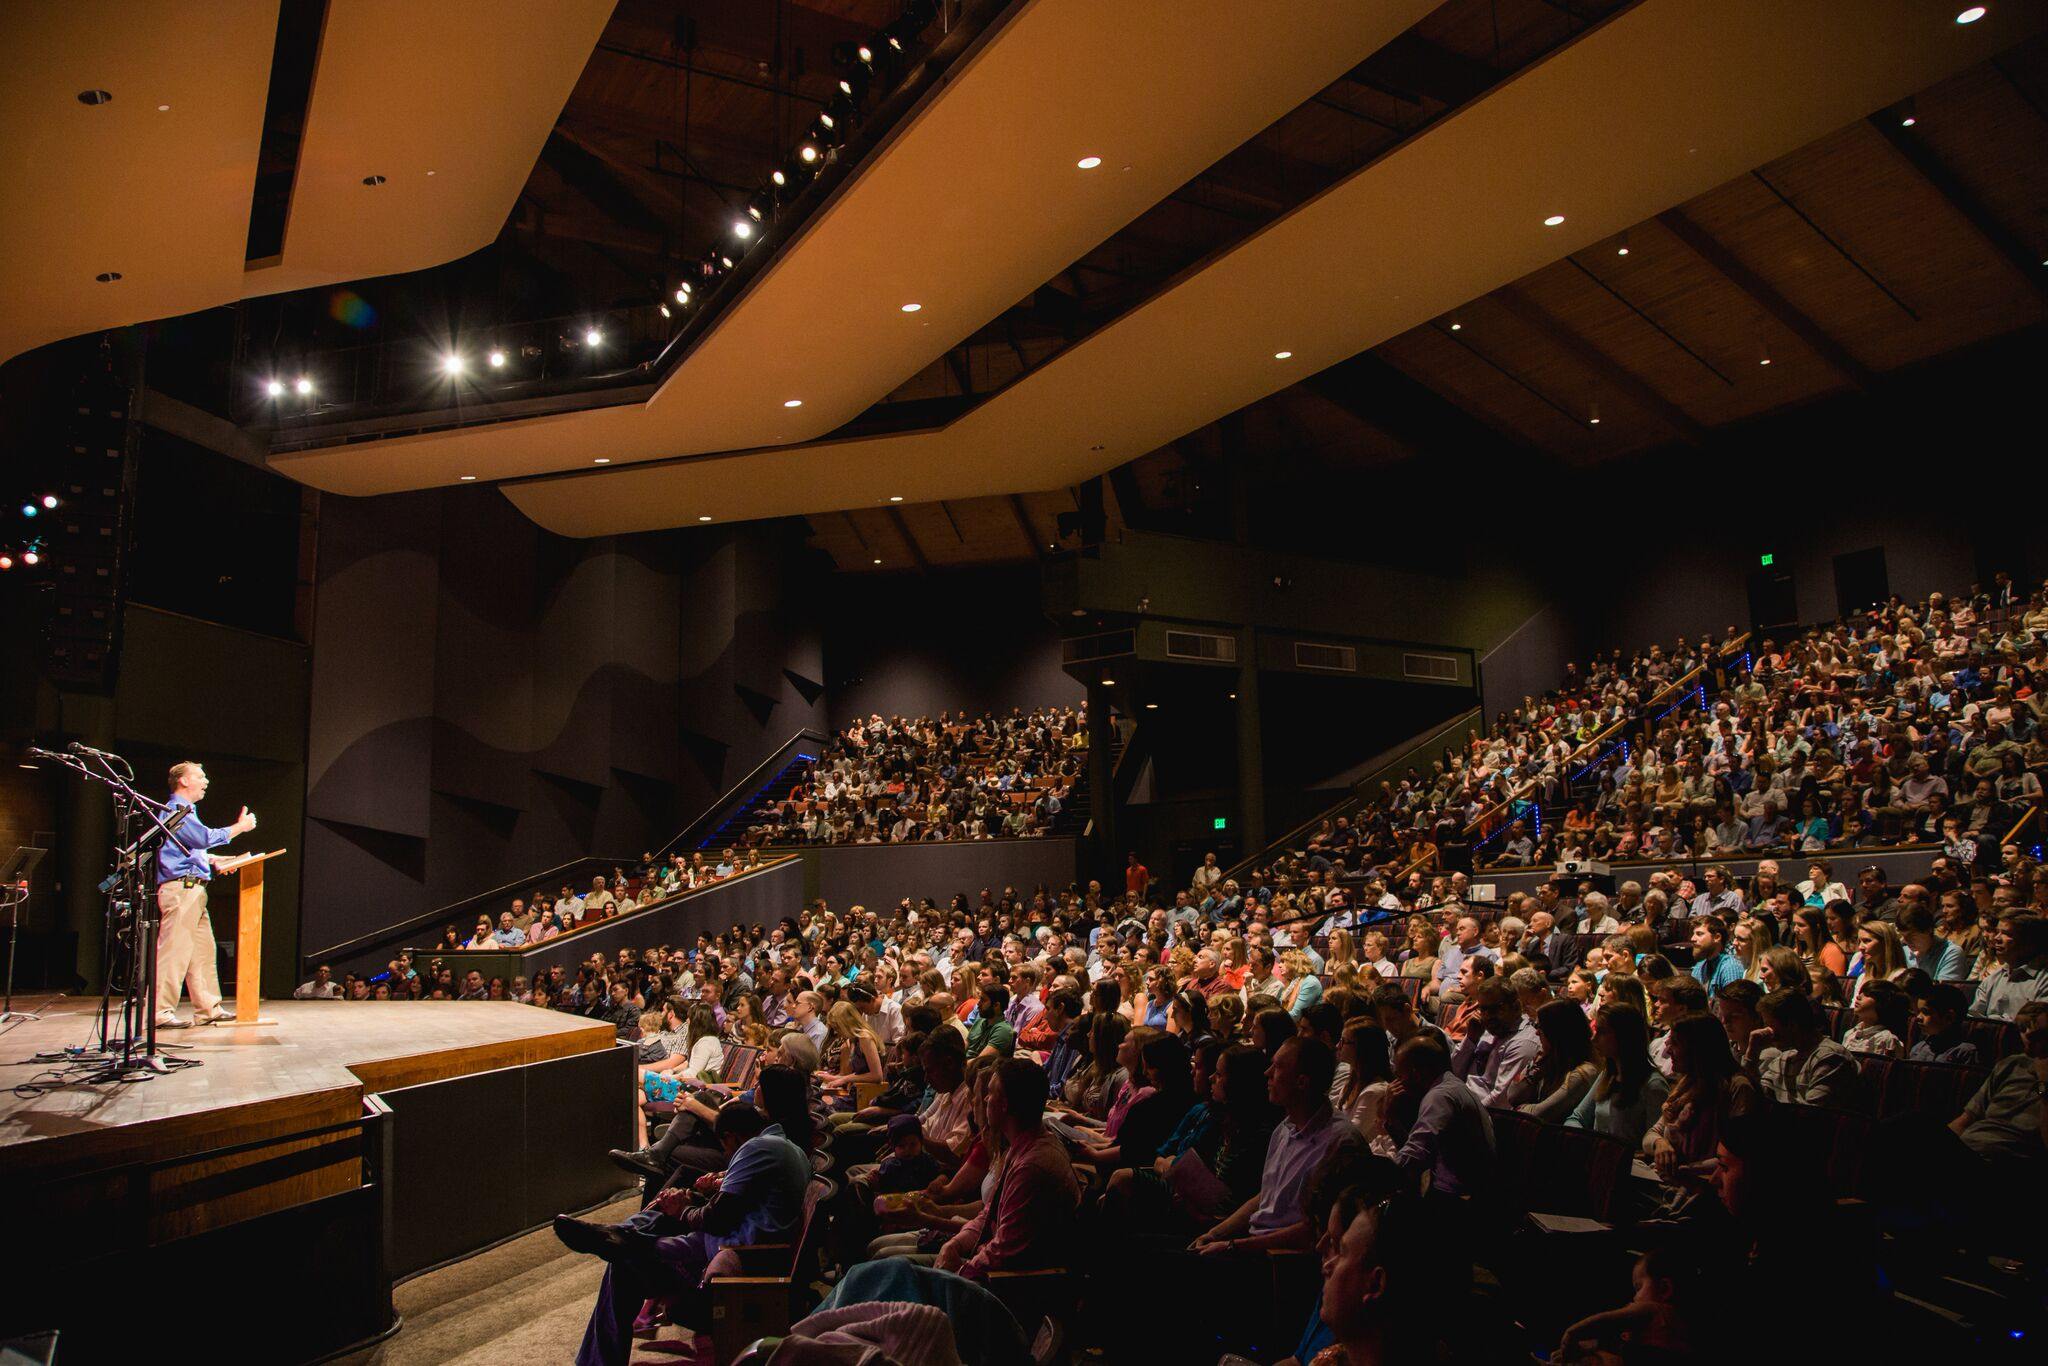 Special all-together church service at the Lincoln Center - 2015